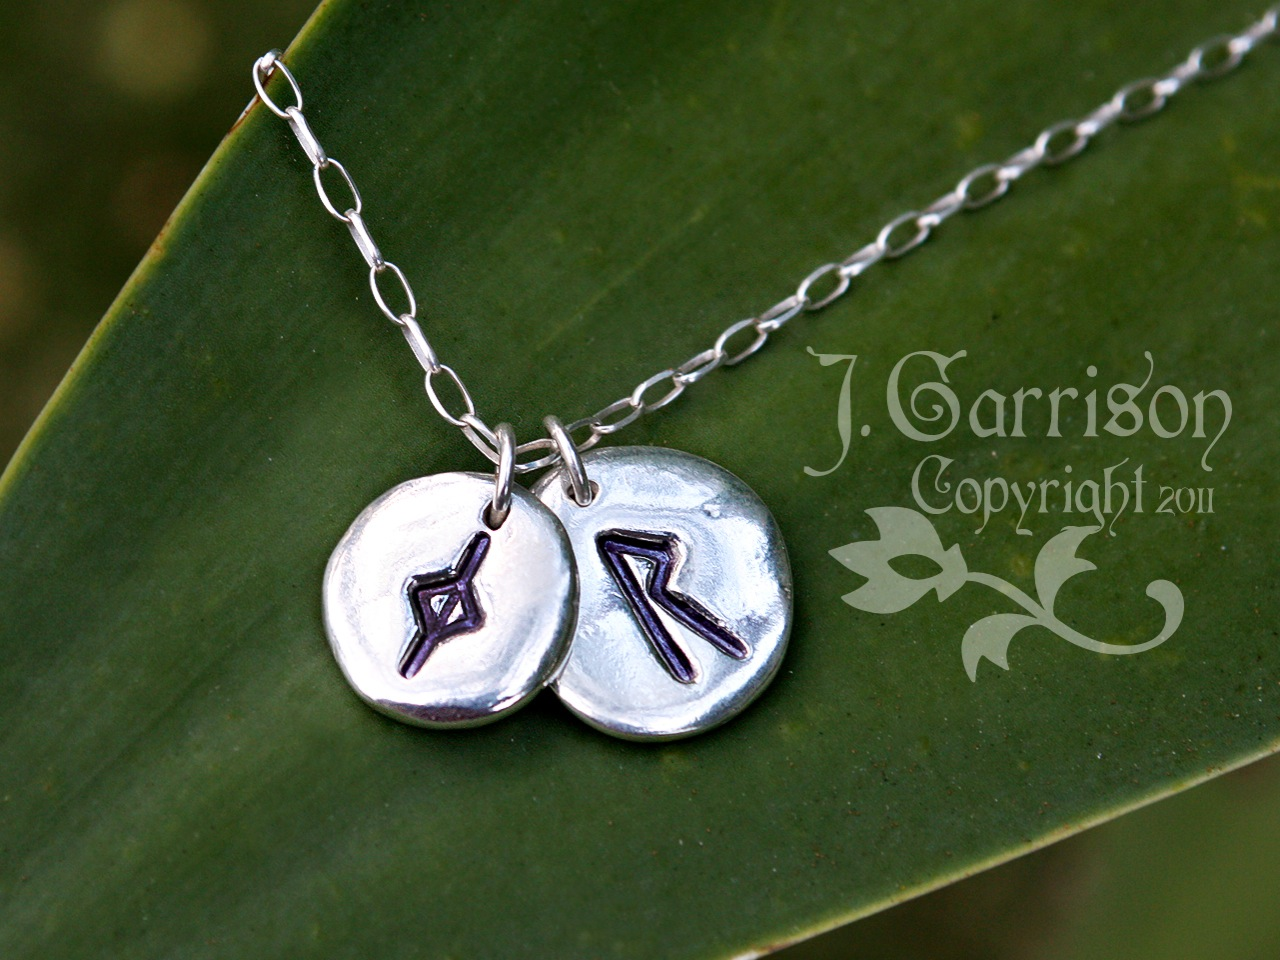 Handmade Jewelry By Jennifer Garrison Runes And Their Meanings